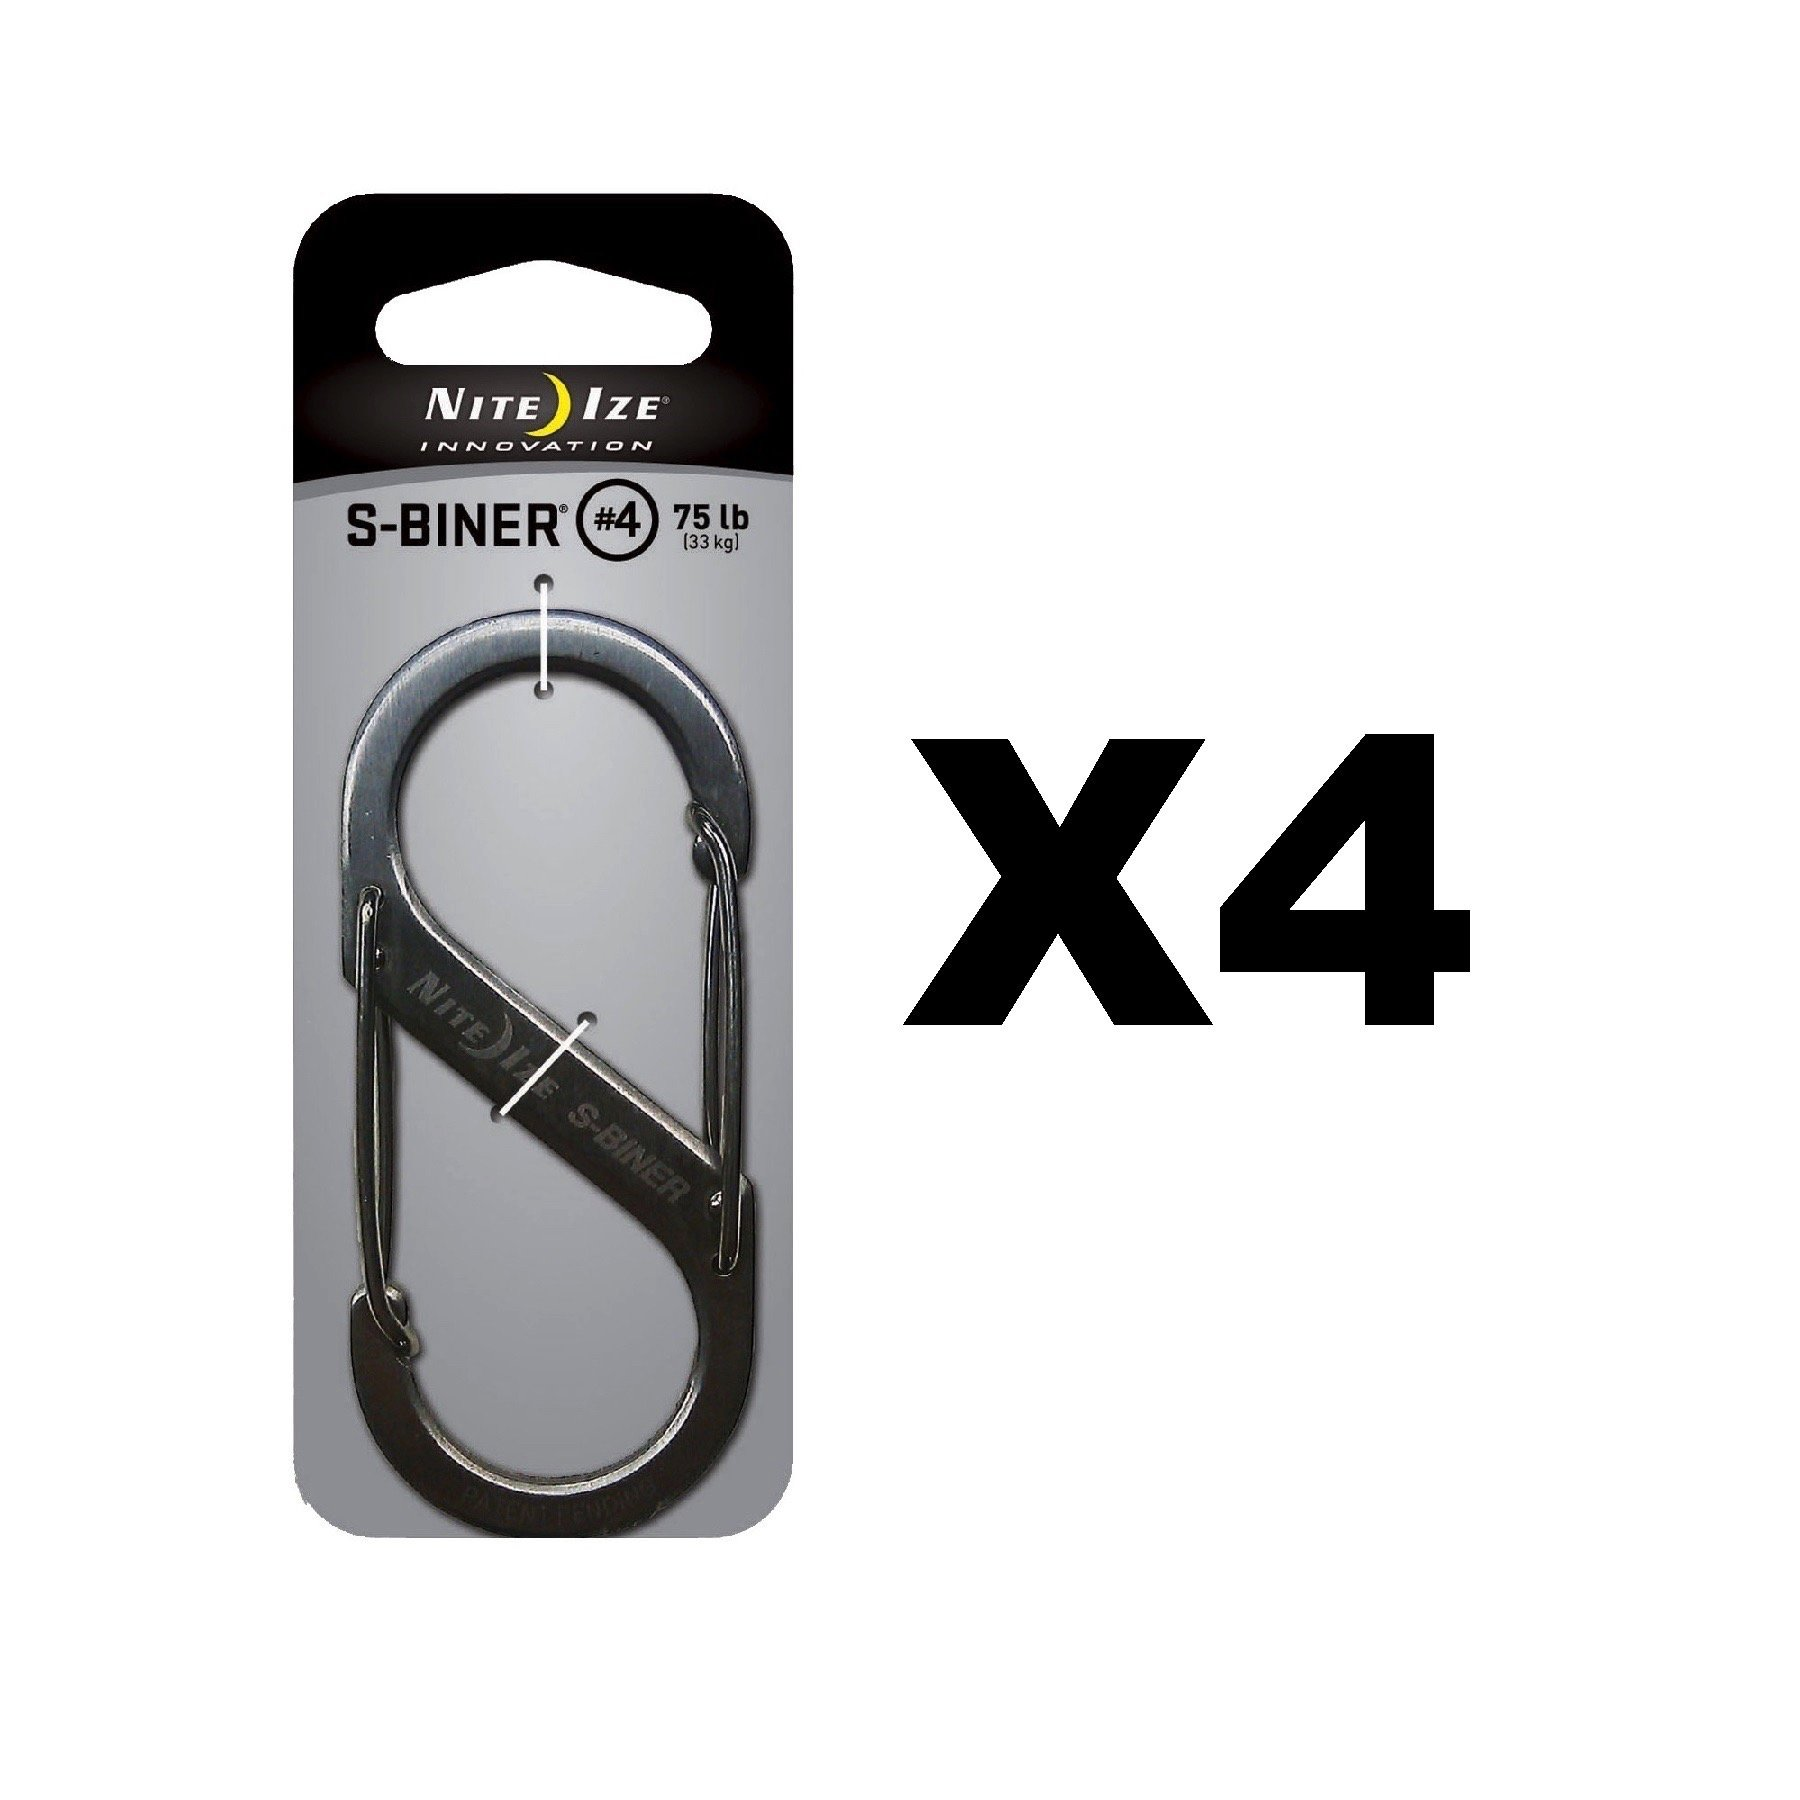 Nite Ize S-Biner Stainless Steel #4 Brushed Dual-Gated Carabiner 75lb (4-Pack)